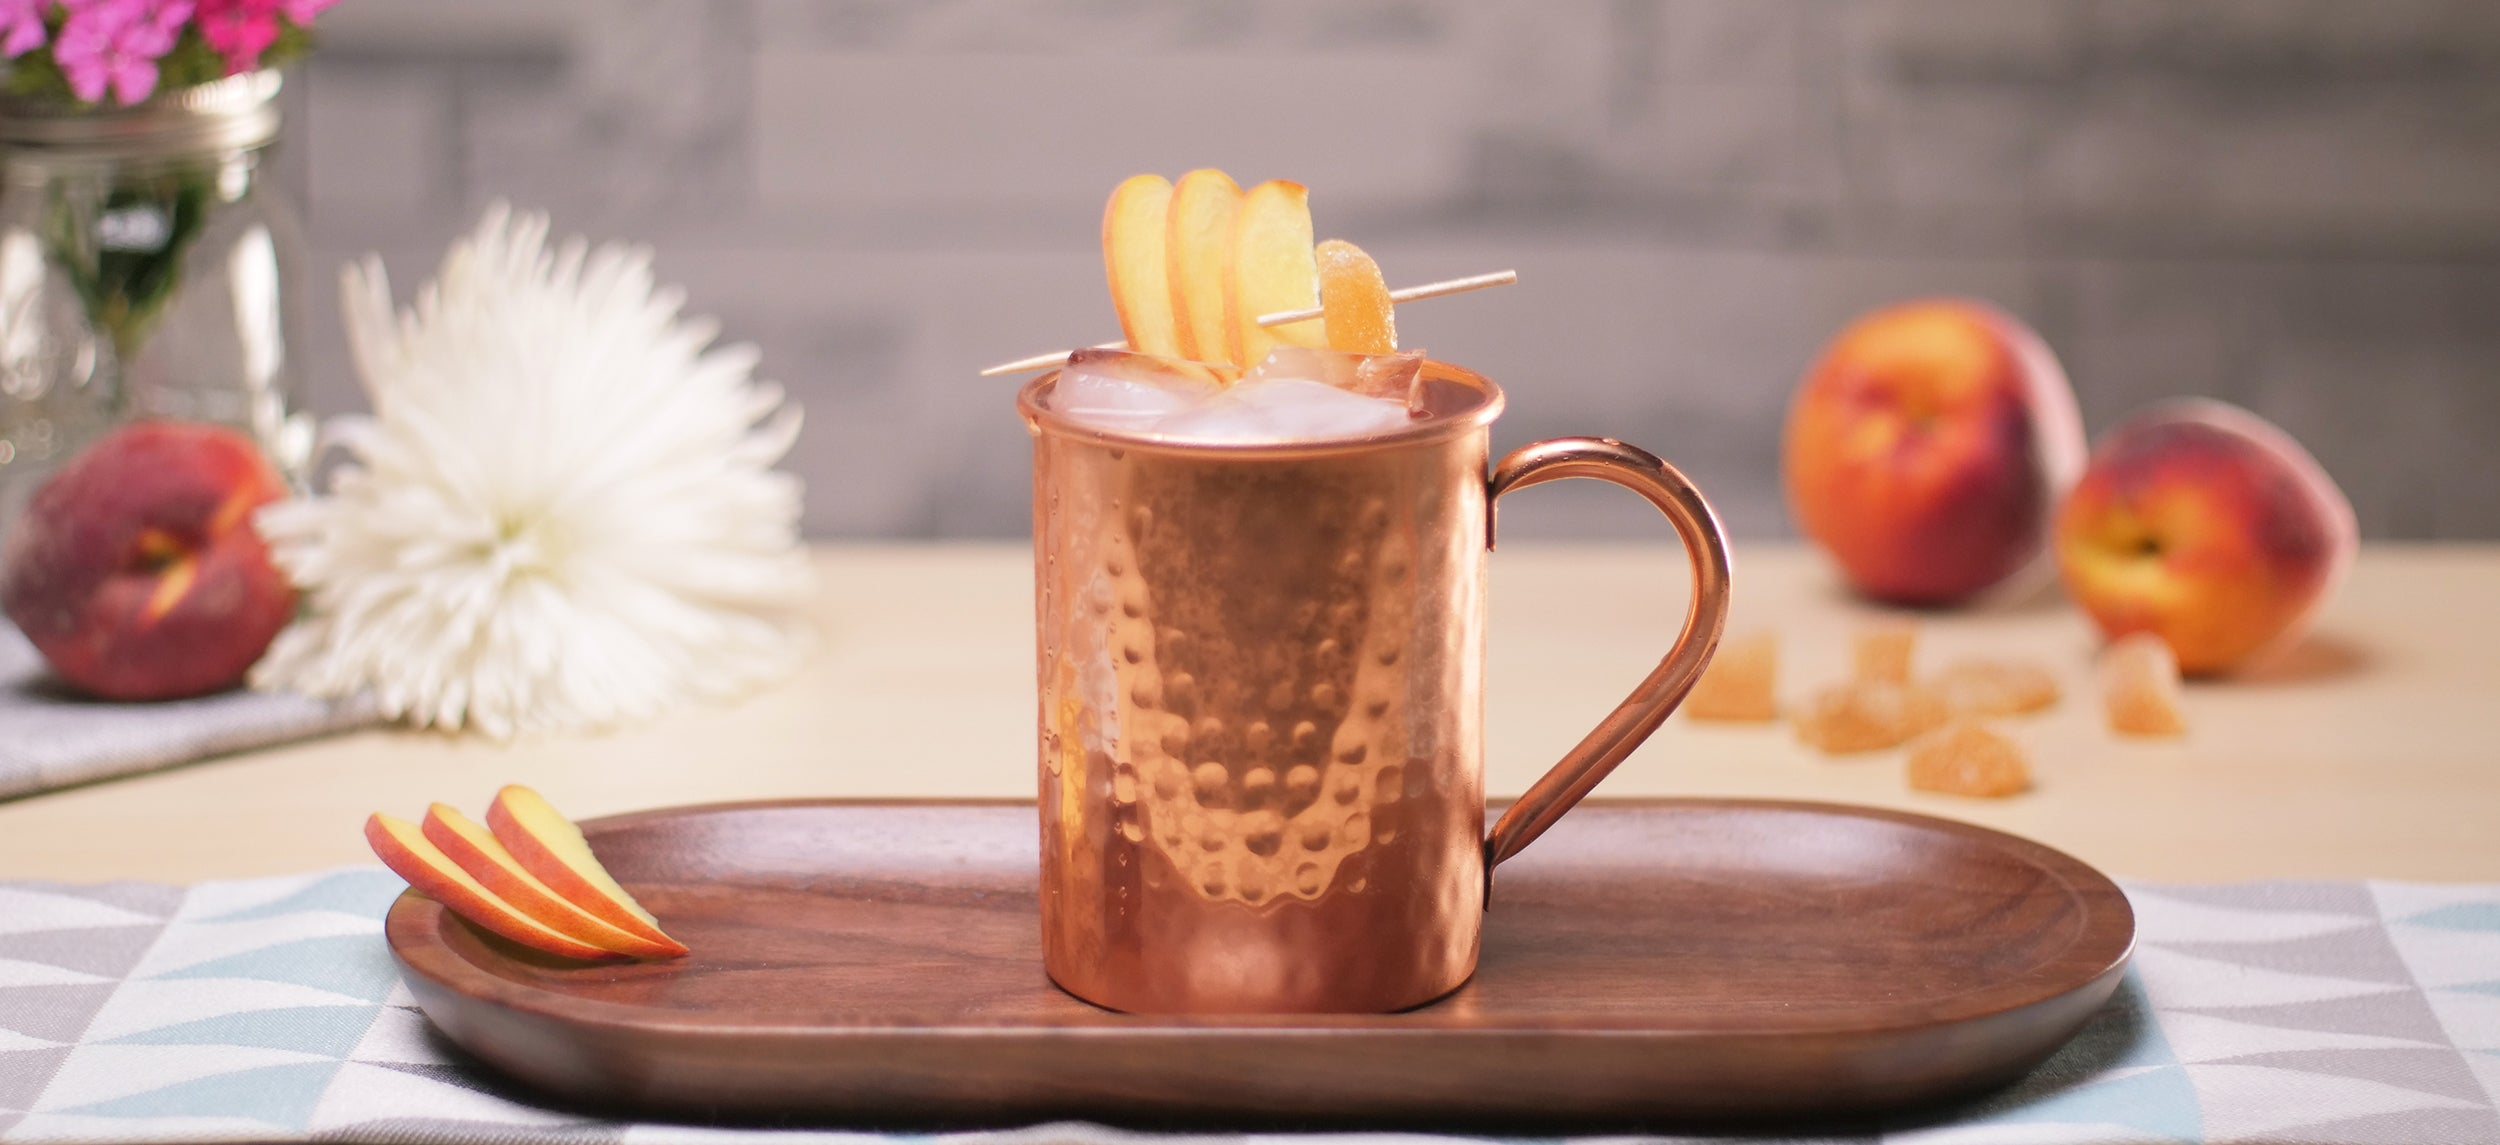 Georgia Mule (Peach and Ginger)